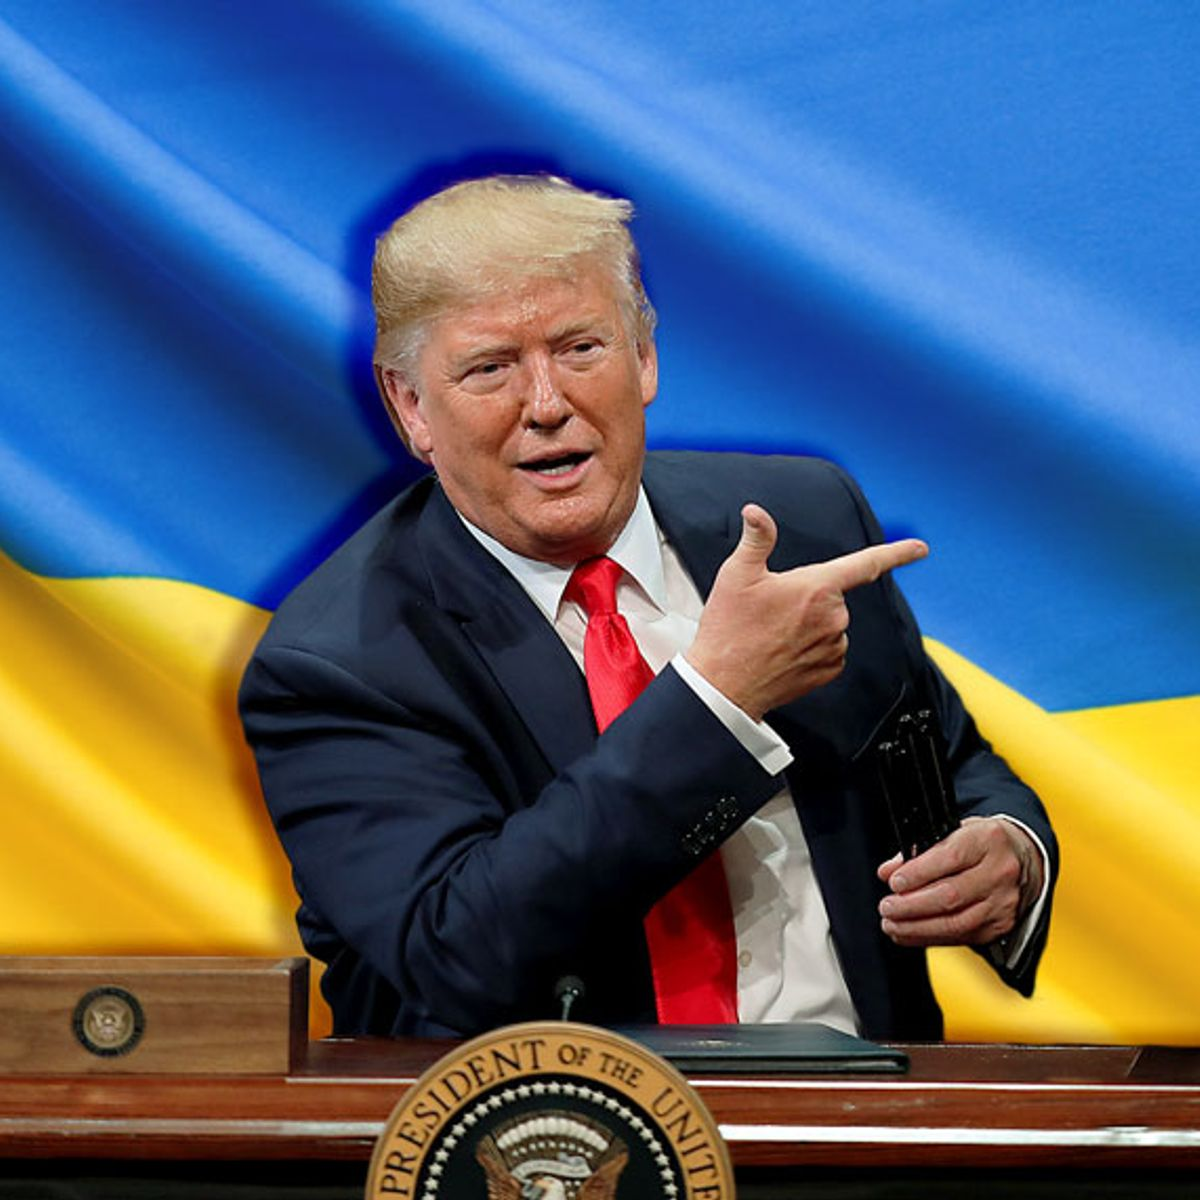 New conservative defense for Trump: He was wrong on Ukraine, but impeachment is too icky